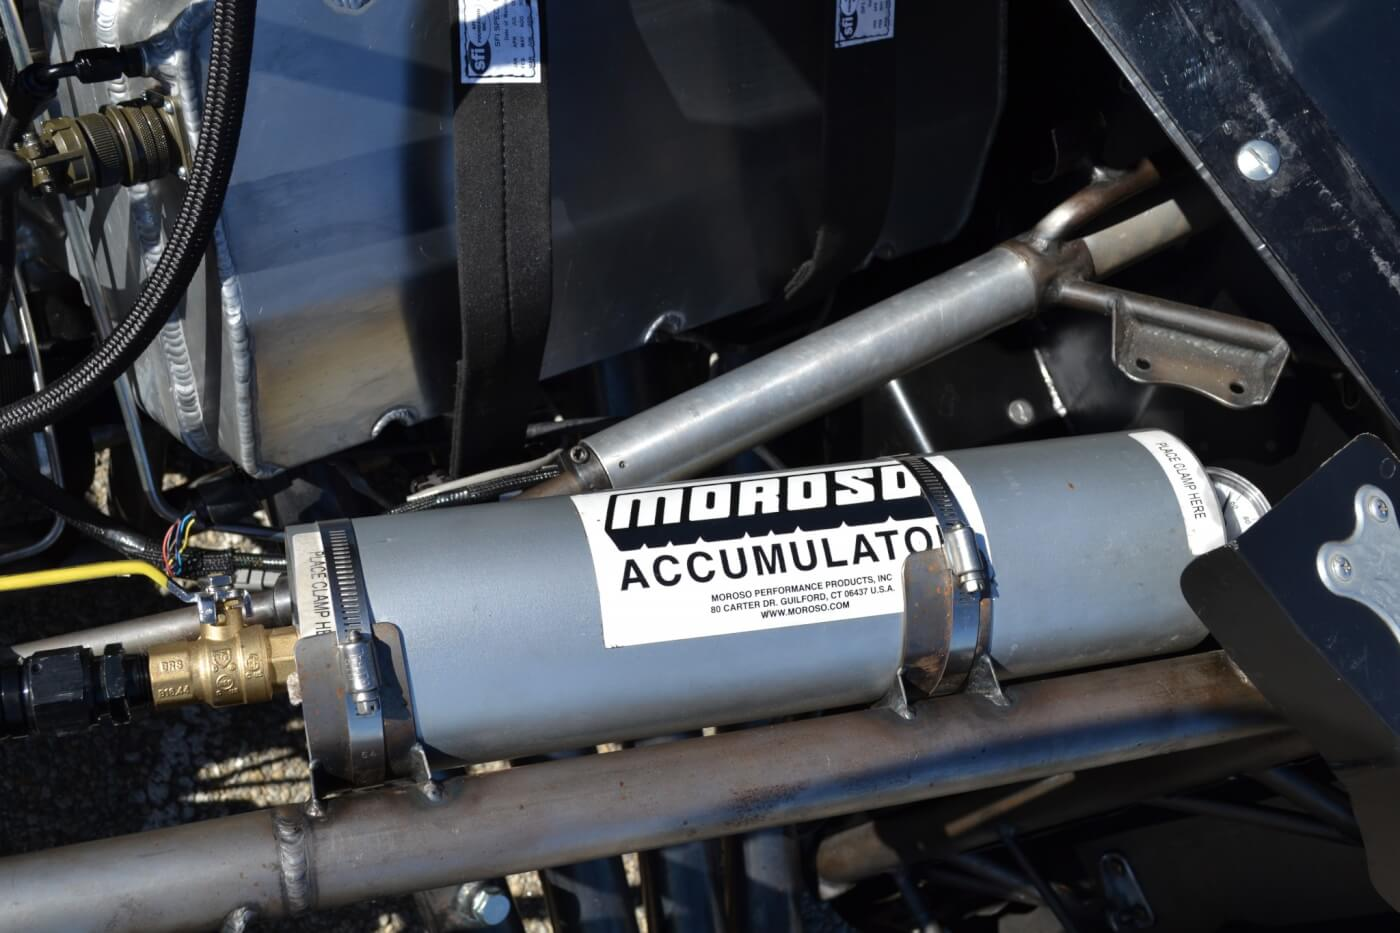 With so many one-off pieces, a Moroso oil accumulator was employed at start-ups to reduce wear. The accumulator will also fire off quarts of oil instantly in case the engine ever loses pressure, to prevent bearing, ring, or other engine damage.